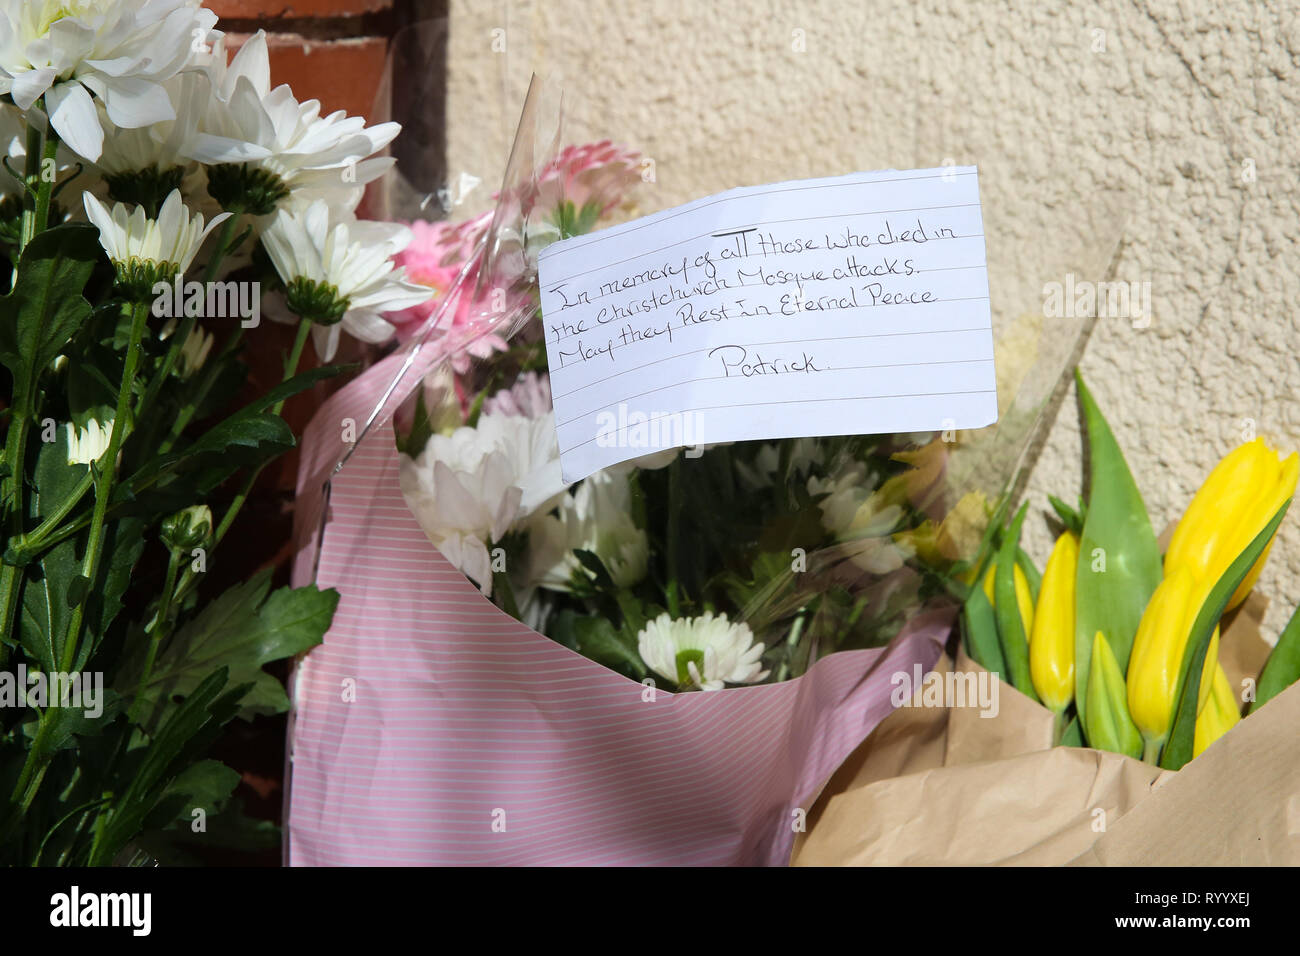 Finsbury Park Mosque, London, UK 15 Mar 2019 - Flowers and a message left at the entrance to Finsbury Park Mosque in north London, after Christchurch attack, in New Zealand in which 49 people died following a shooting at two mosques and a man in his late twenties has been charge with murder.  Credit: Dinendra Haria/Alamy Live News - Stock Image